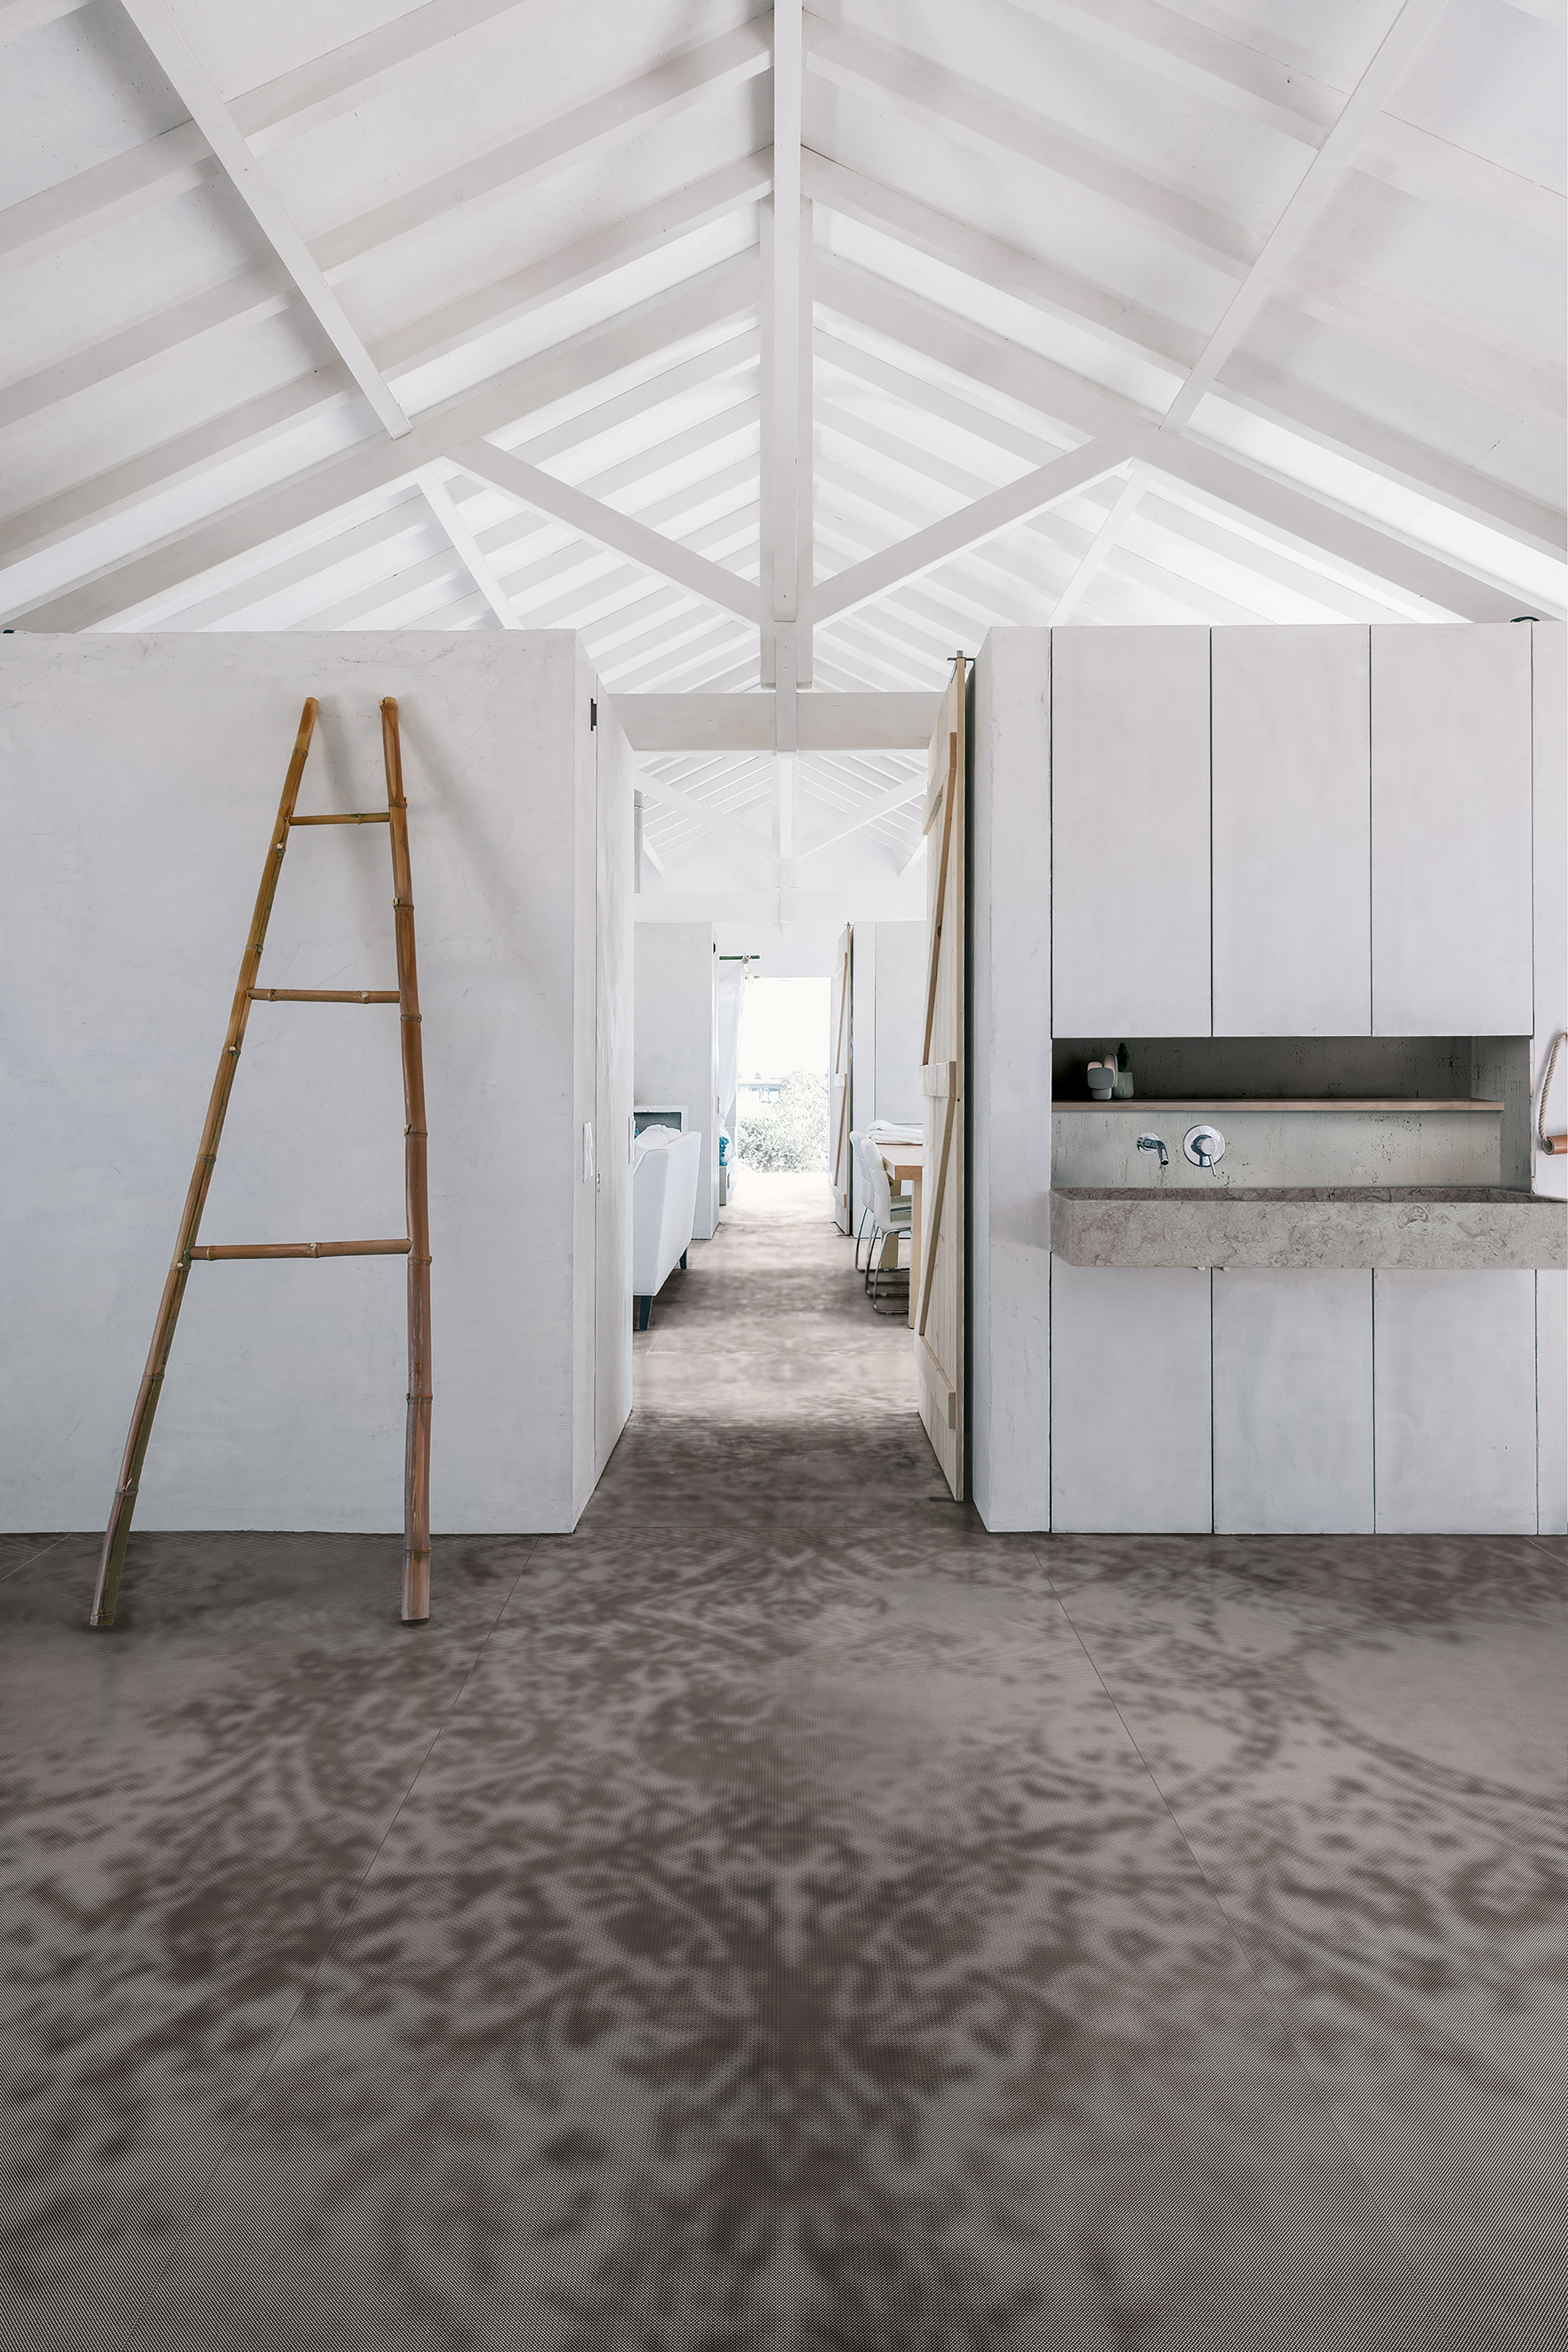 Marazzi creates patterned stoneware for indoor and outdoor use